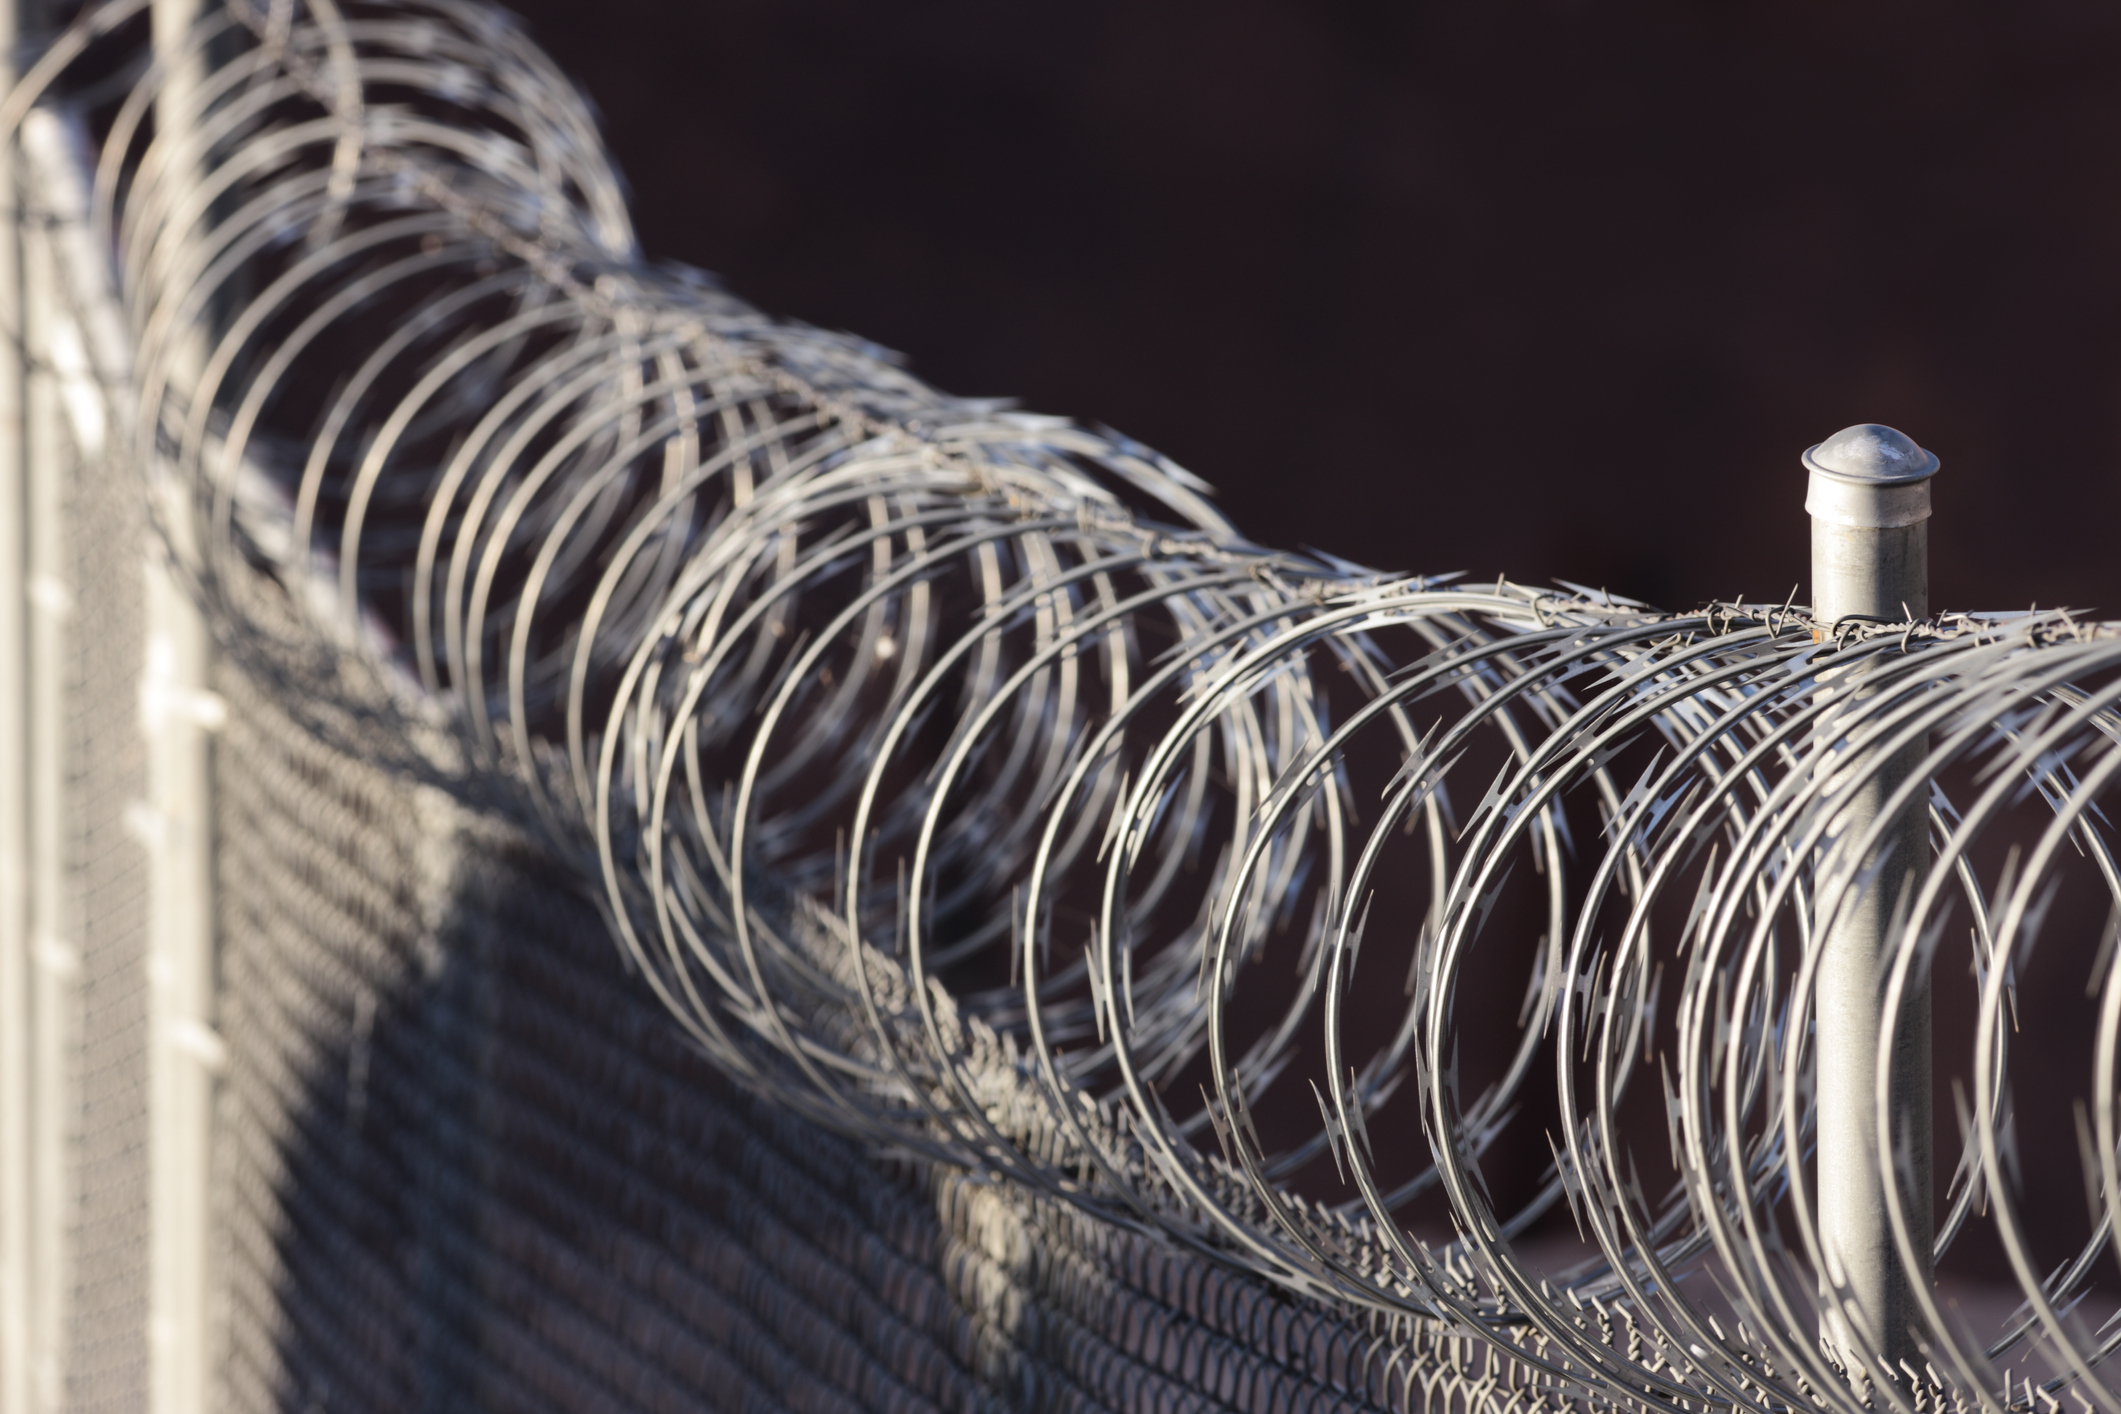 A razor wire topped fence runs diagonally from lower right to upper left of frame in a horizontal composition.